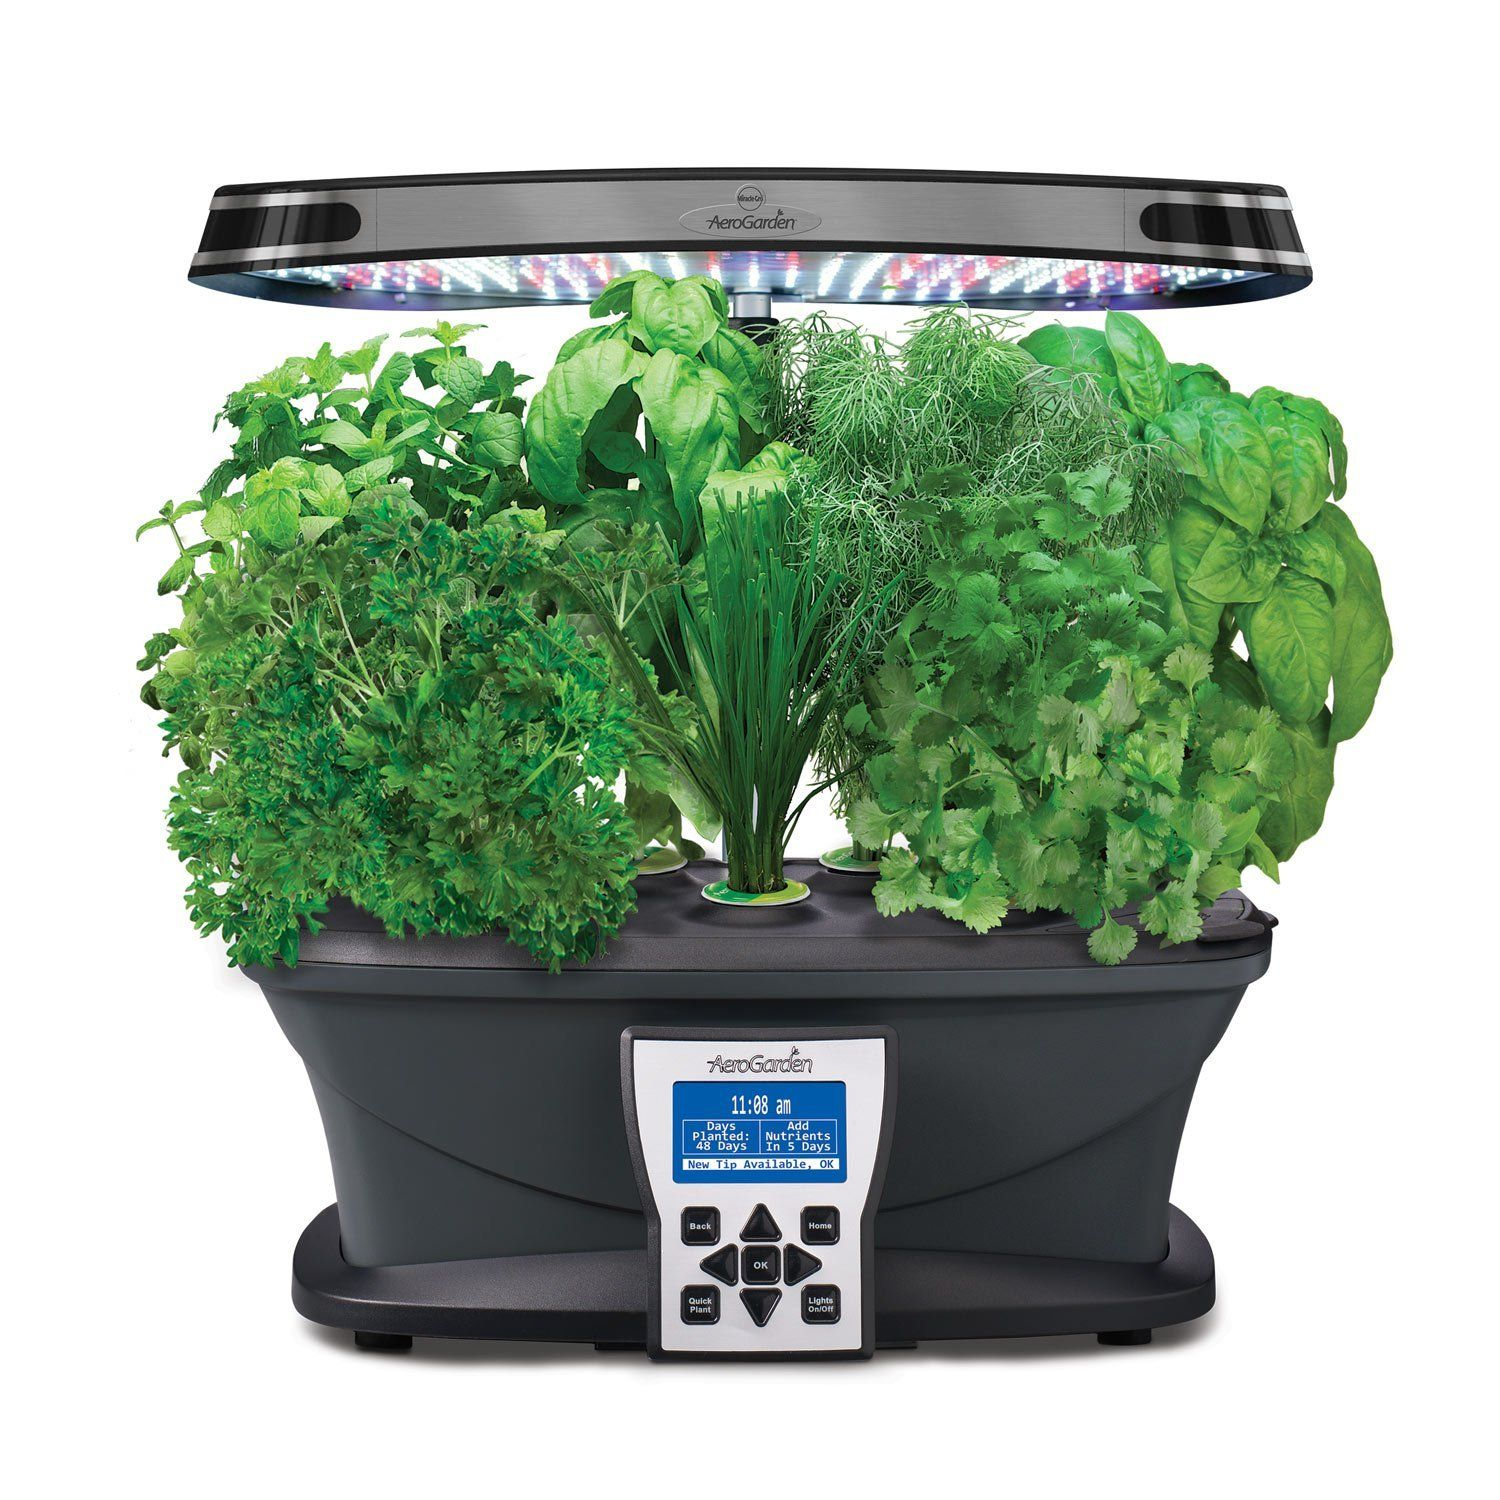 Led Kitchen Garden Year Around Counter Top Culinary Herb: I Love The Aerogardens. They Allow Me To Save Quite A Bit